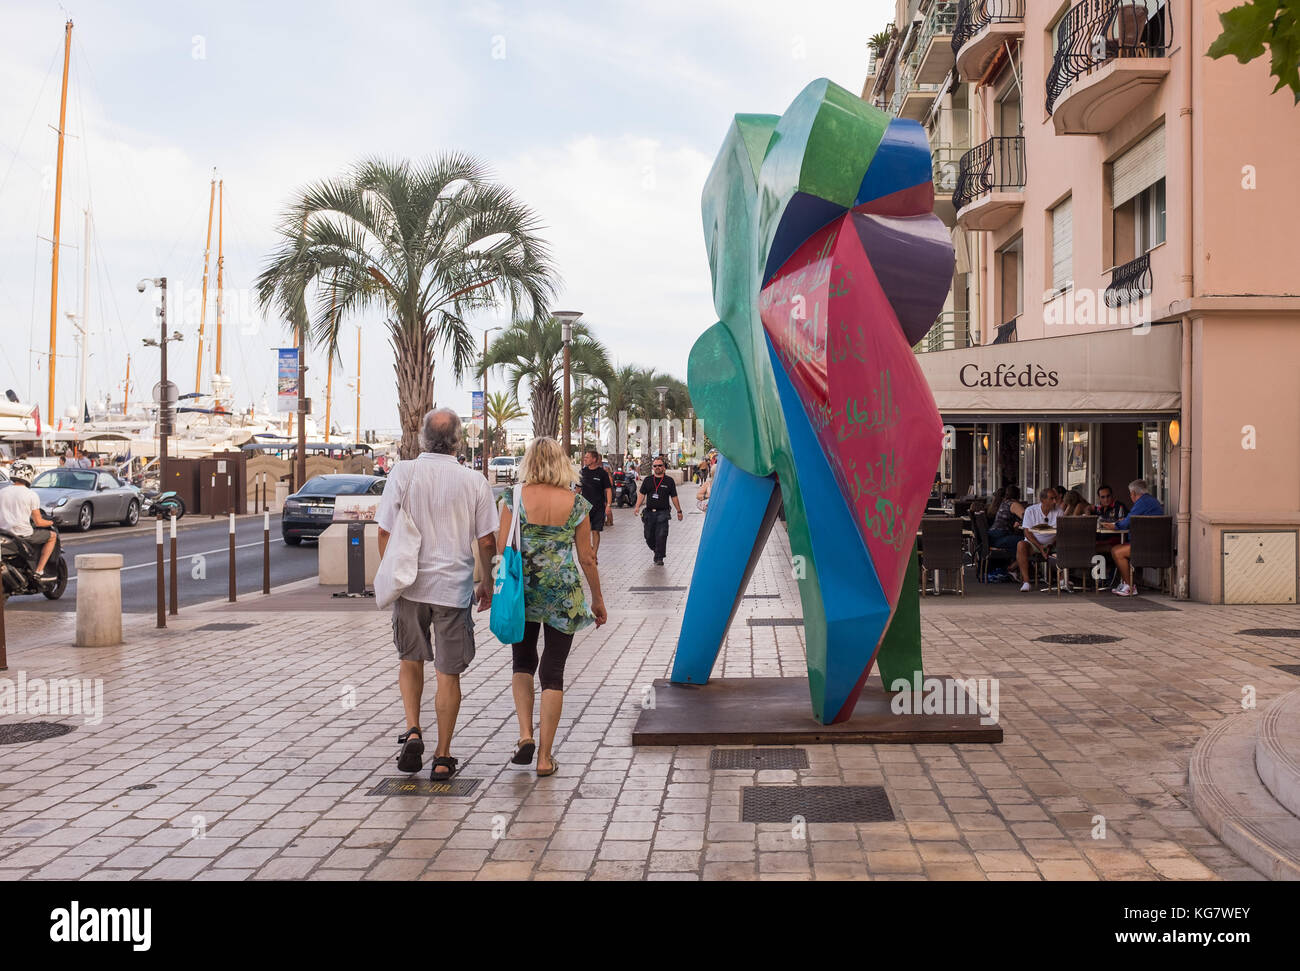 Tourists walking on pavement near colourful sculpture at Quai Saint Pierre, Cannes, Cote d'Azur, Provence-Alpes - Stock Image